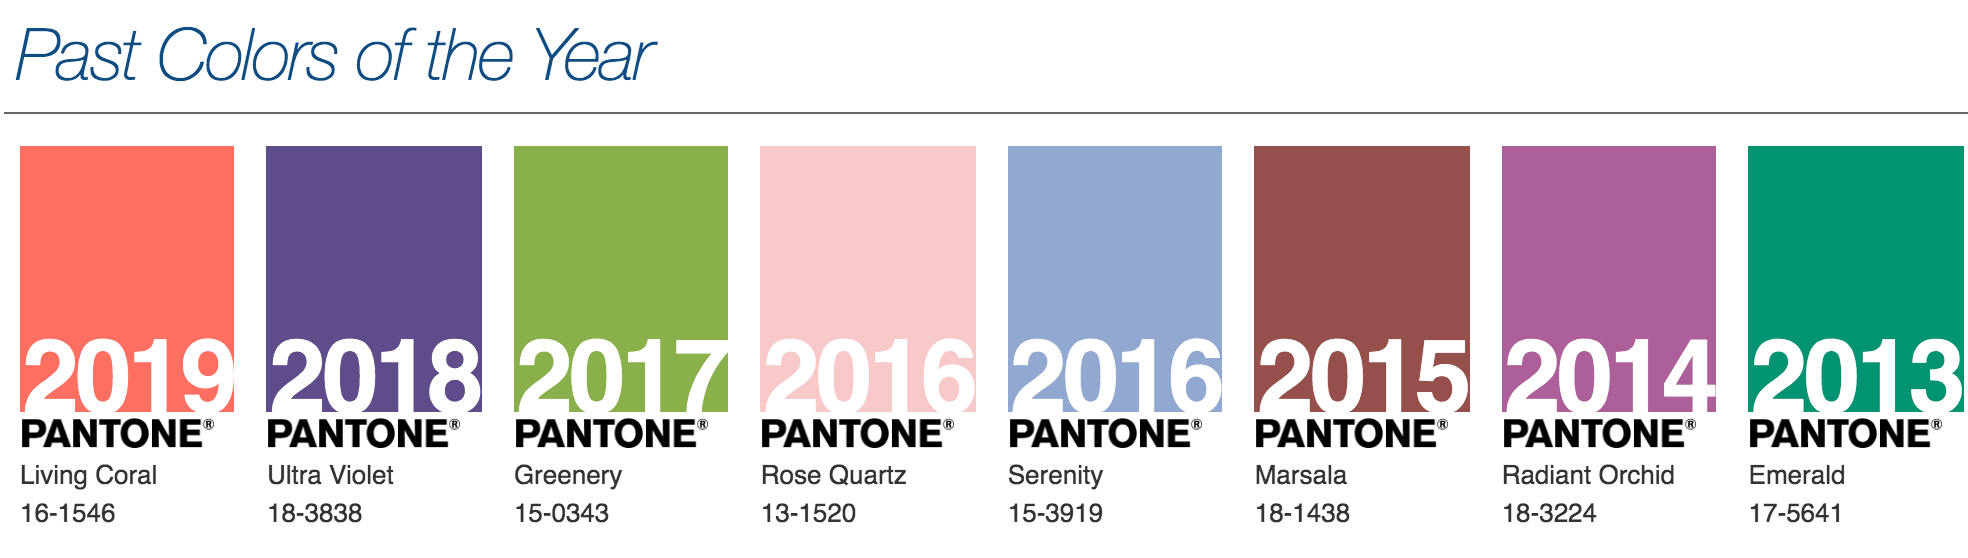 Past Pantone Color of the Year for Weddings